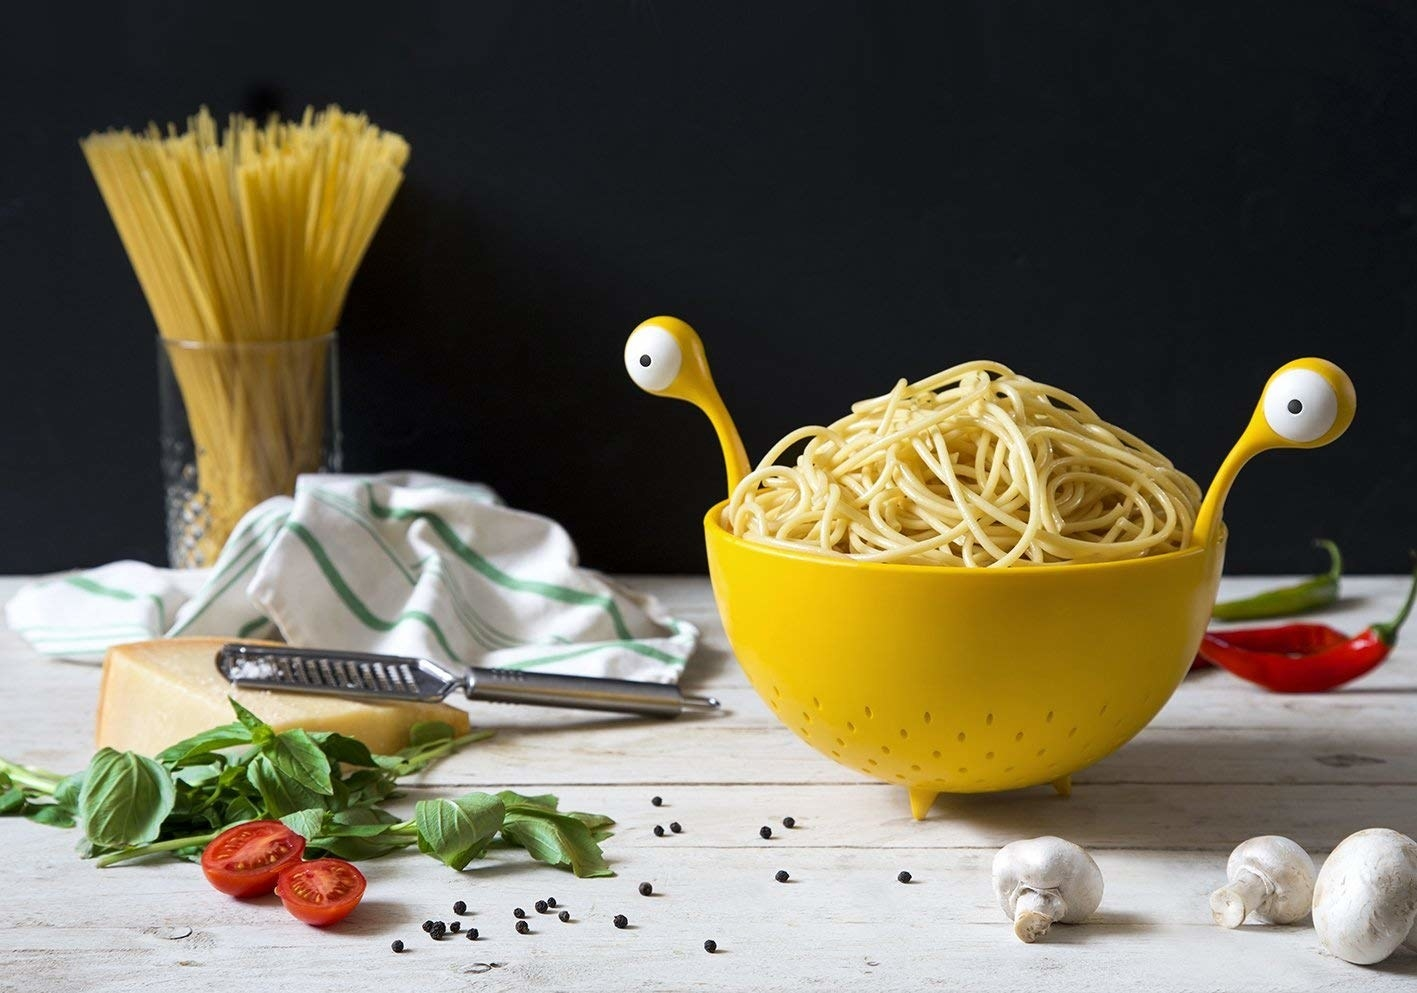 Yellow colander with eyeball handles